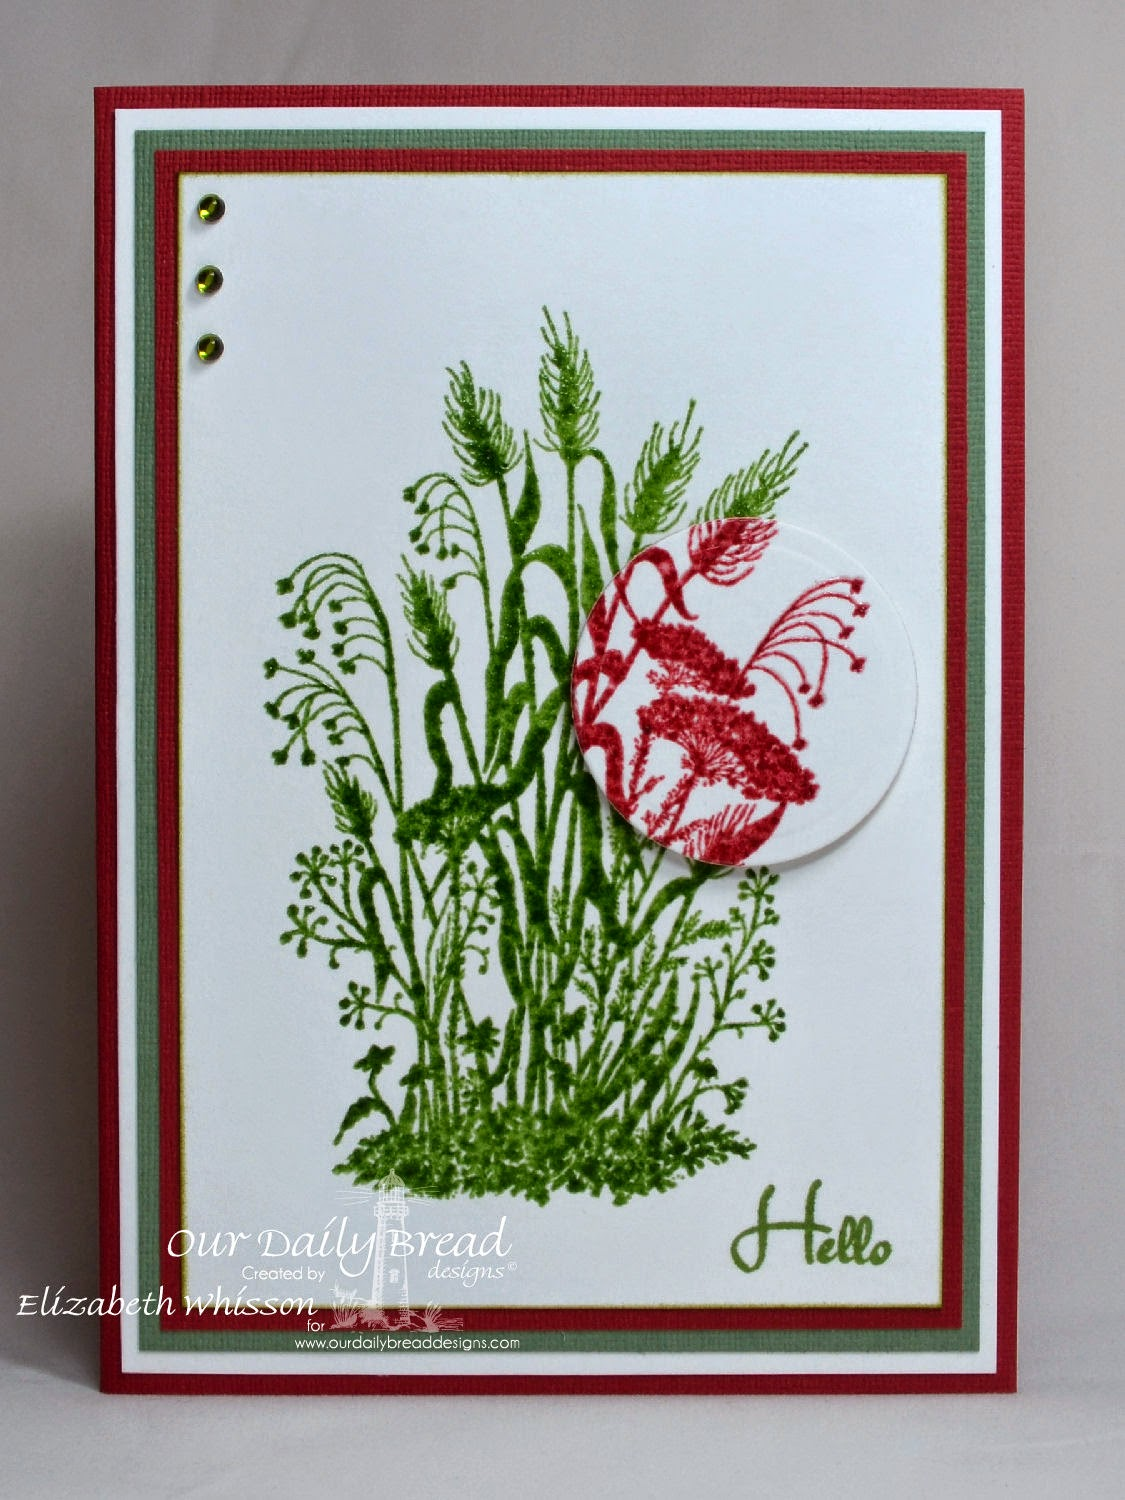 Our Daily Bread Designs, Miss You, ODBD Recipe Card and Tags Dies, Designed by Elizabeth Whisson